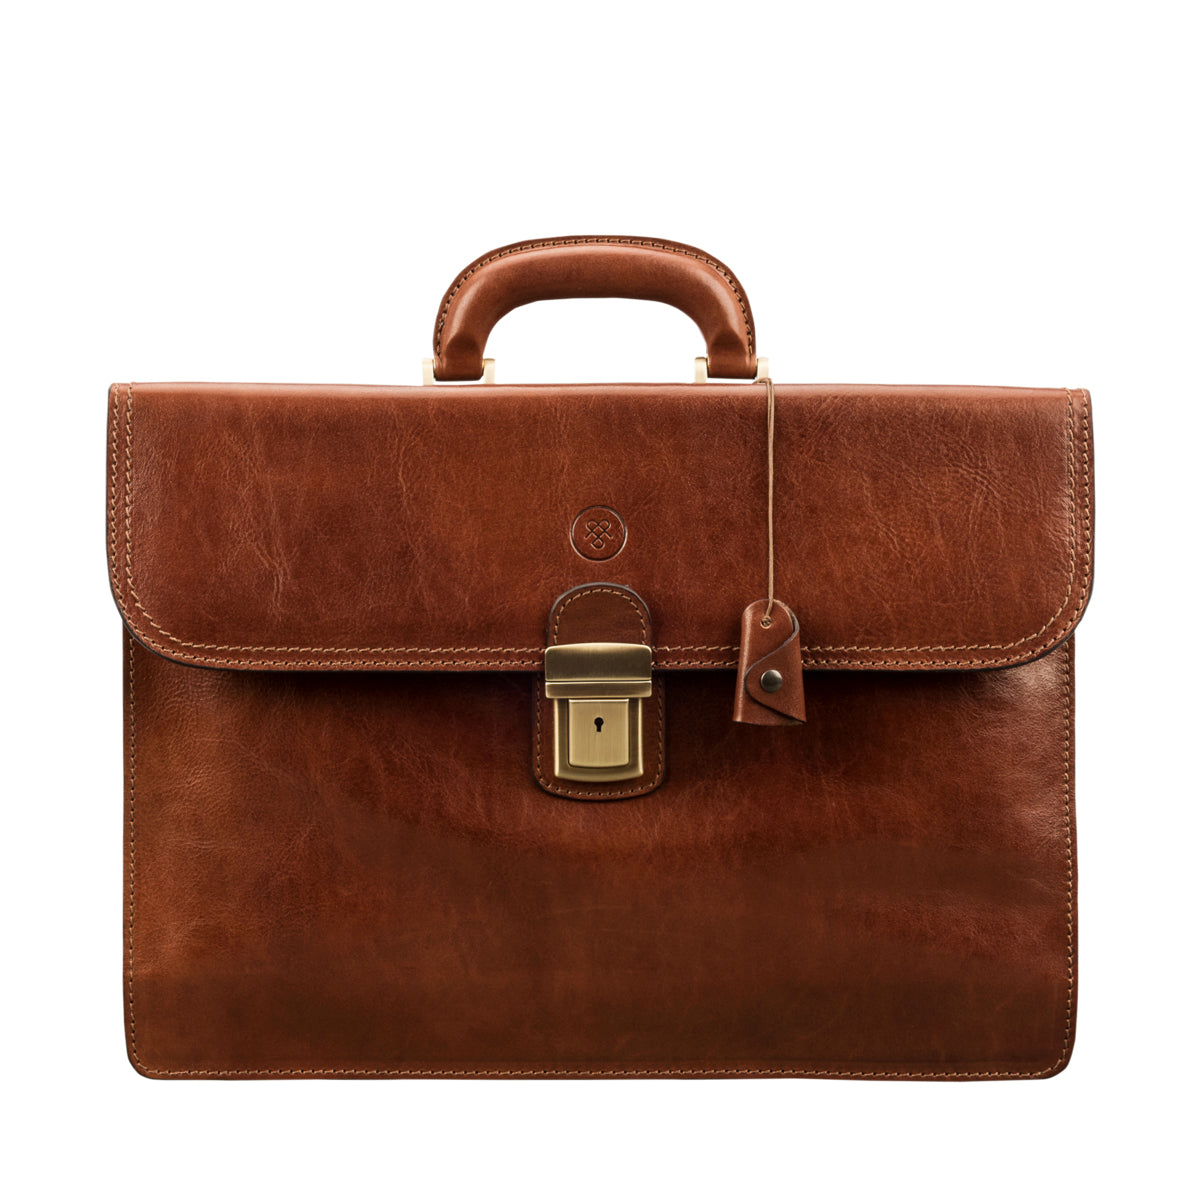 Image 1 of the 'Paolo Due' Handmade Chestnut Veg-Tanned Leather Suitcase